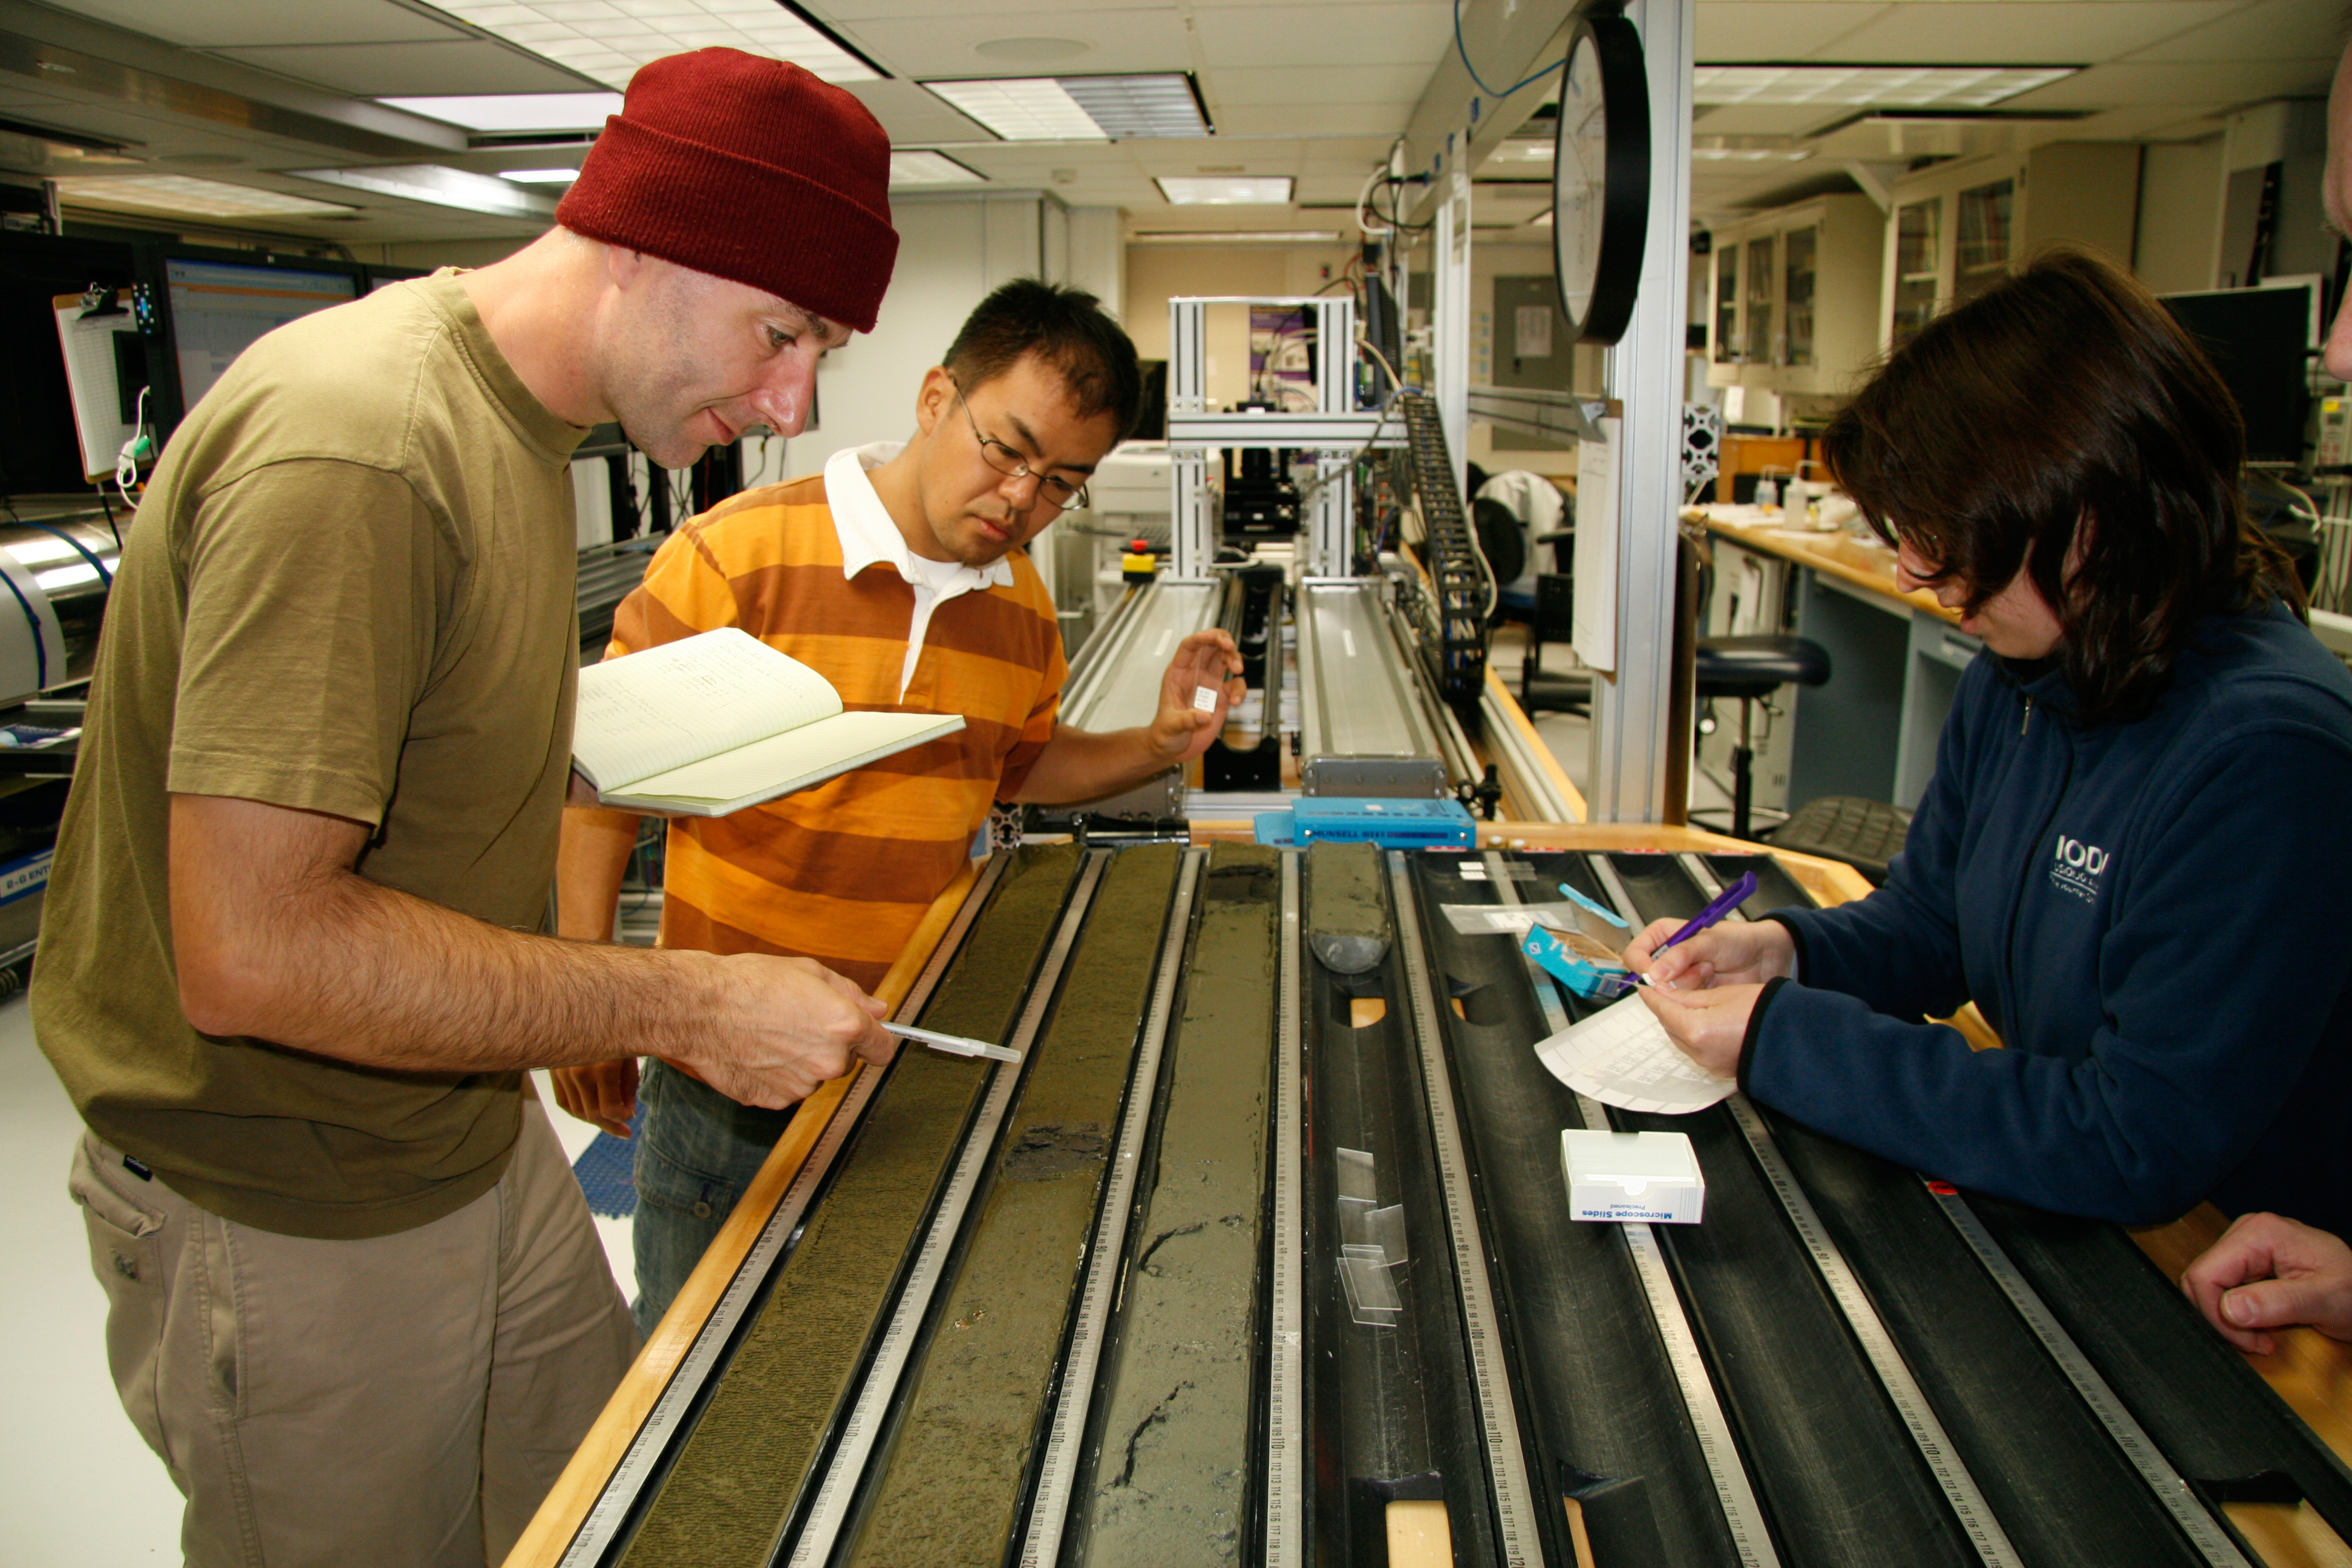 Dr. Ivano Aiello works with students on reviewing a sediment sample.